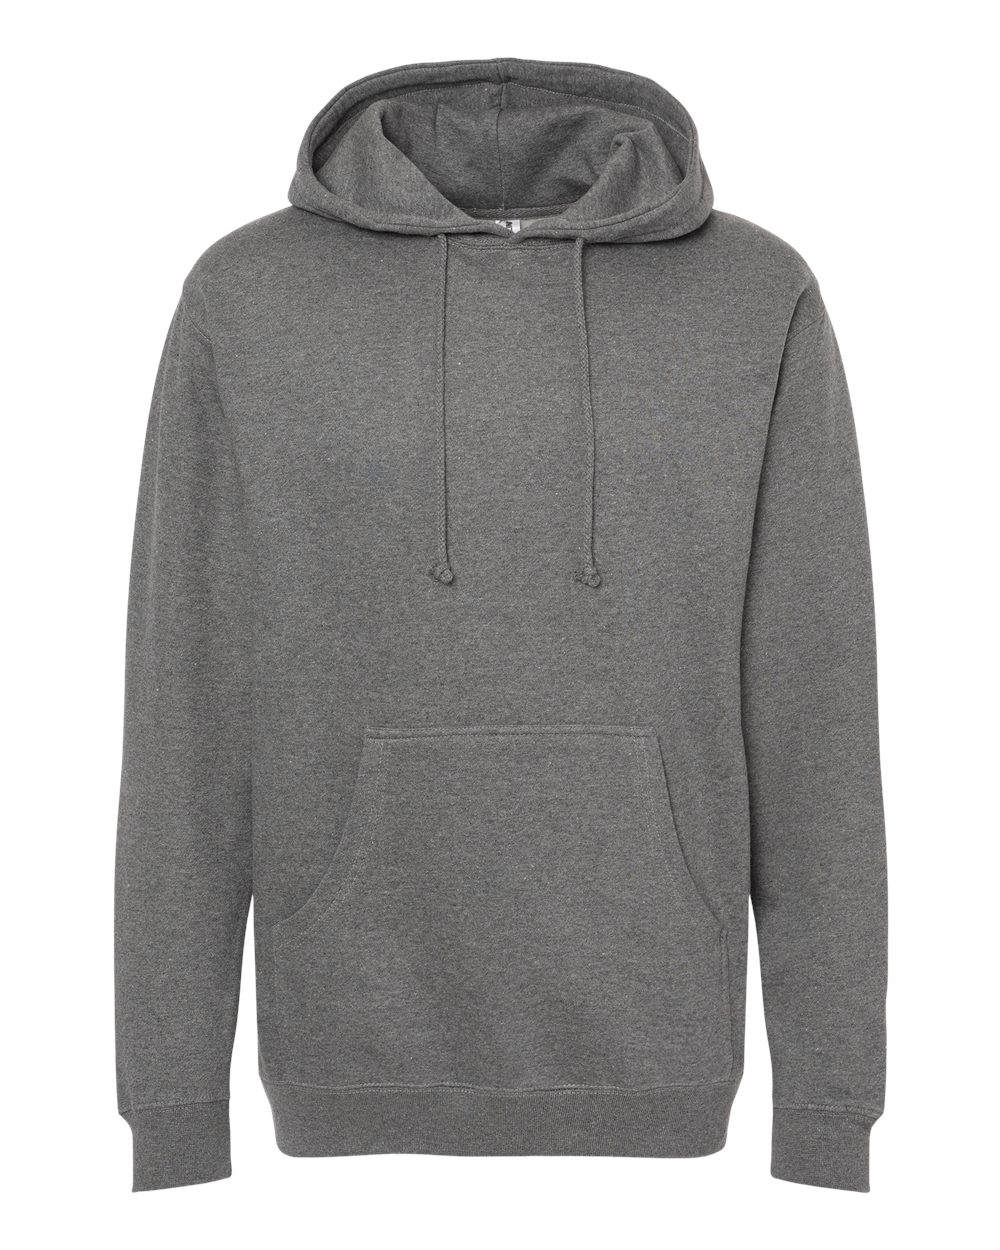 Independent-Trading-Co-Mens-Hooded-Pullover-Sweatshirt-IND4000-up-to-3XL miniature 45